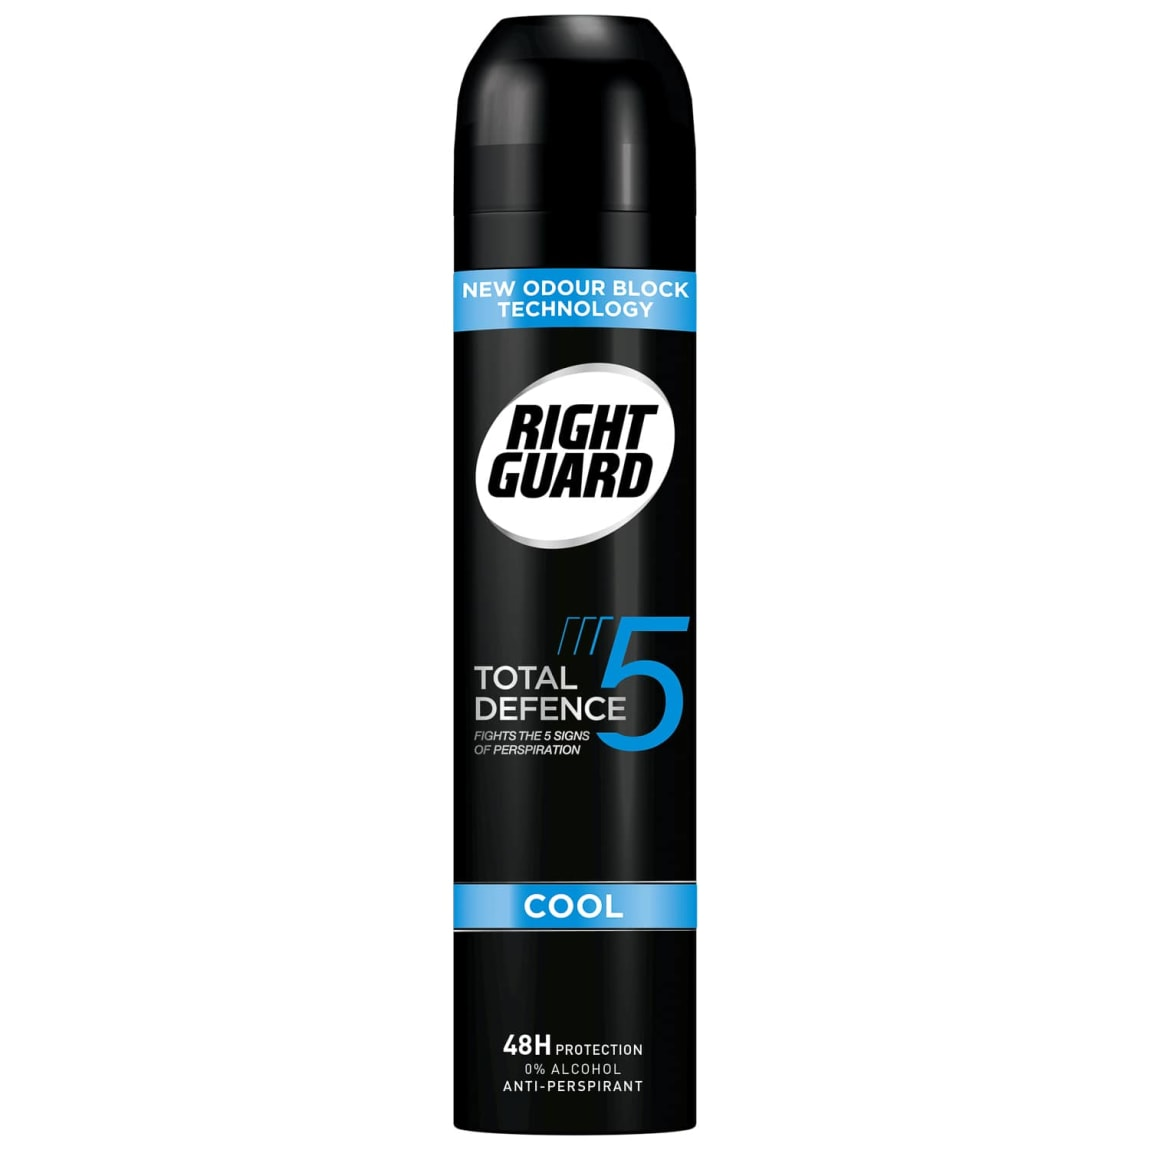 Right Guard Total Defence 5 Cool Anti-Perspirant 250ml